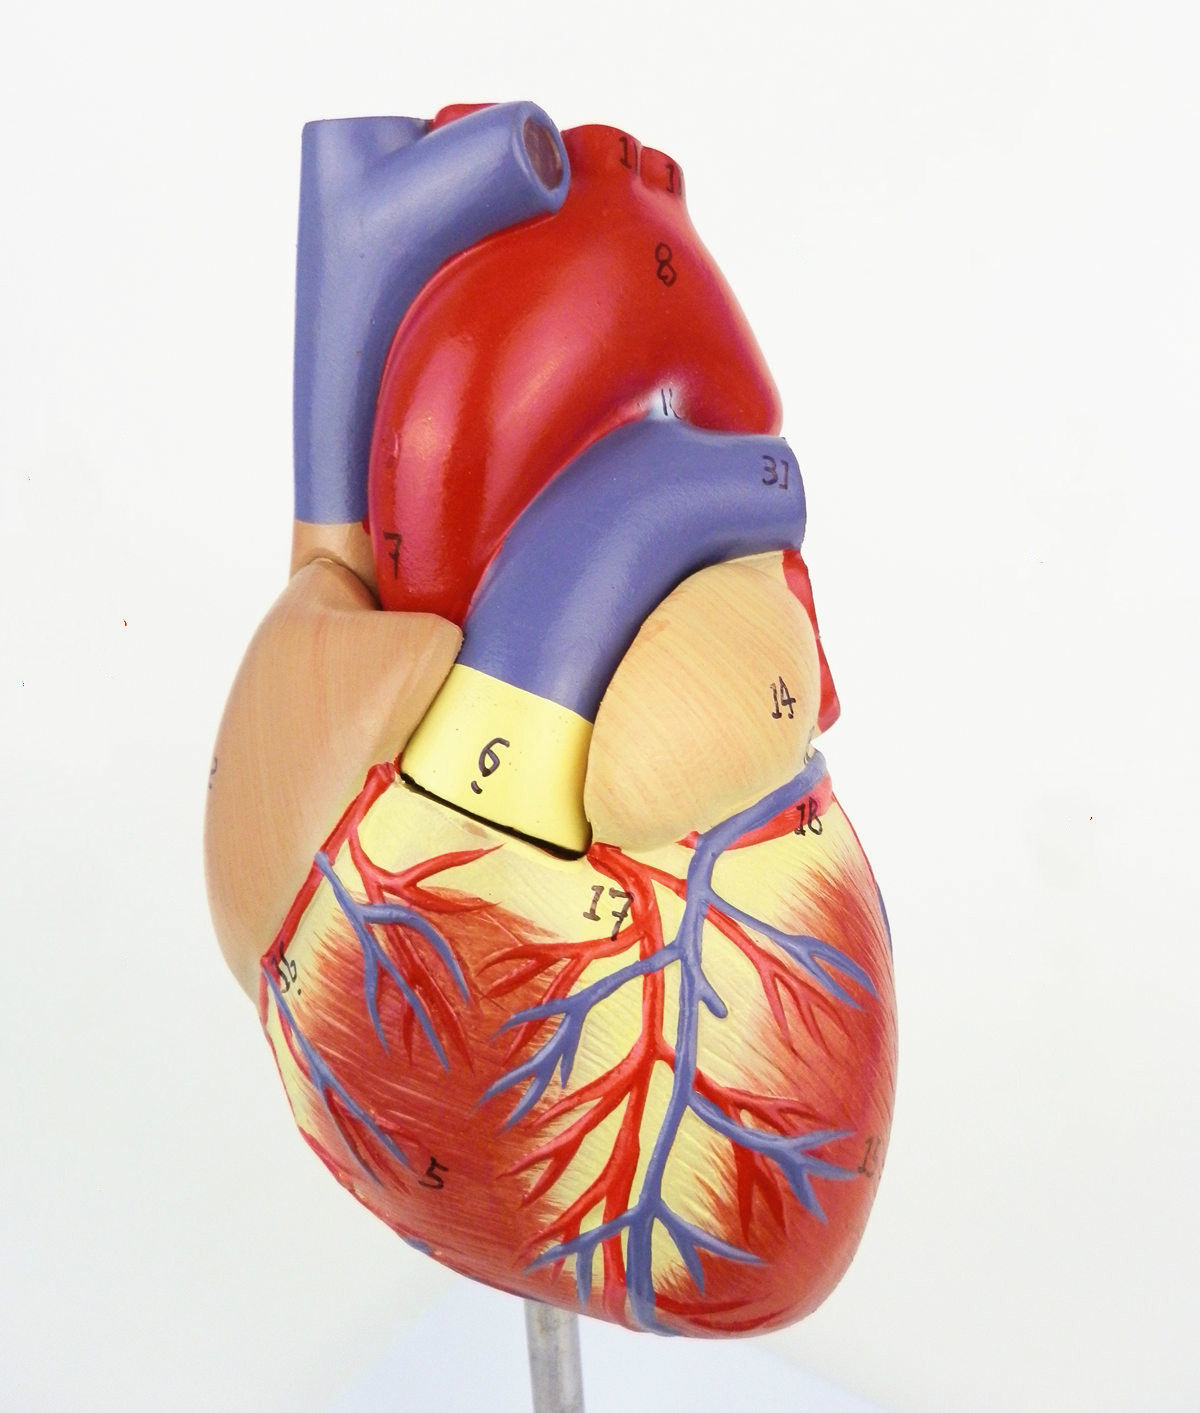 1:1 Human Anatomical Heart Anatomy Viscera Medical Organ Model Emulational + Stand Medical Science Teaching Resources(China)